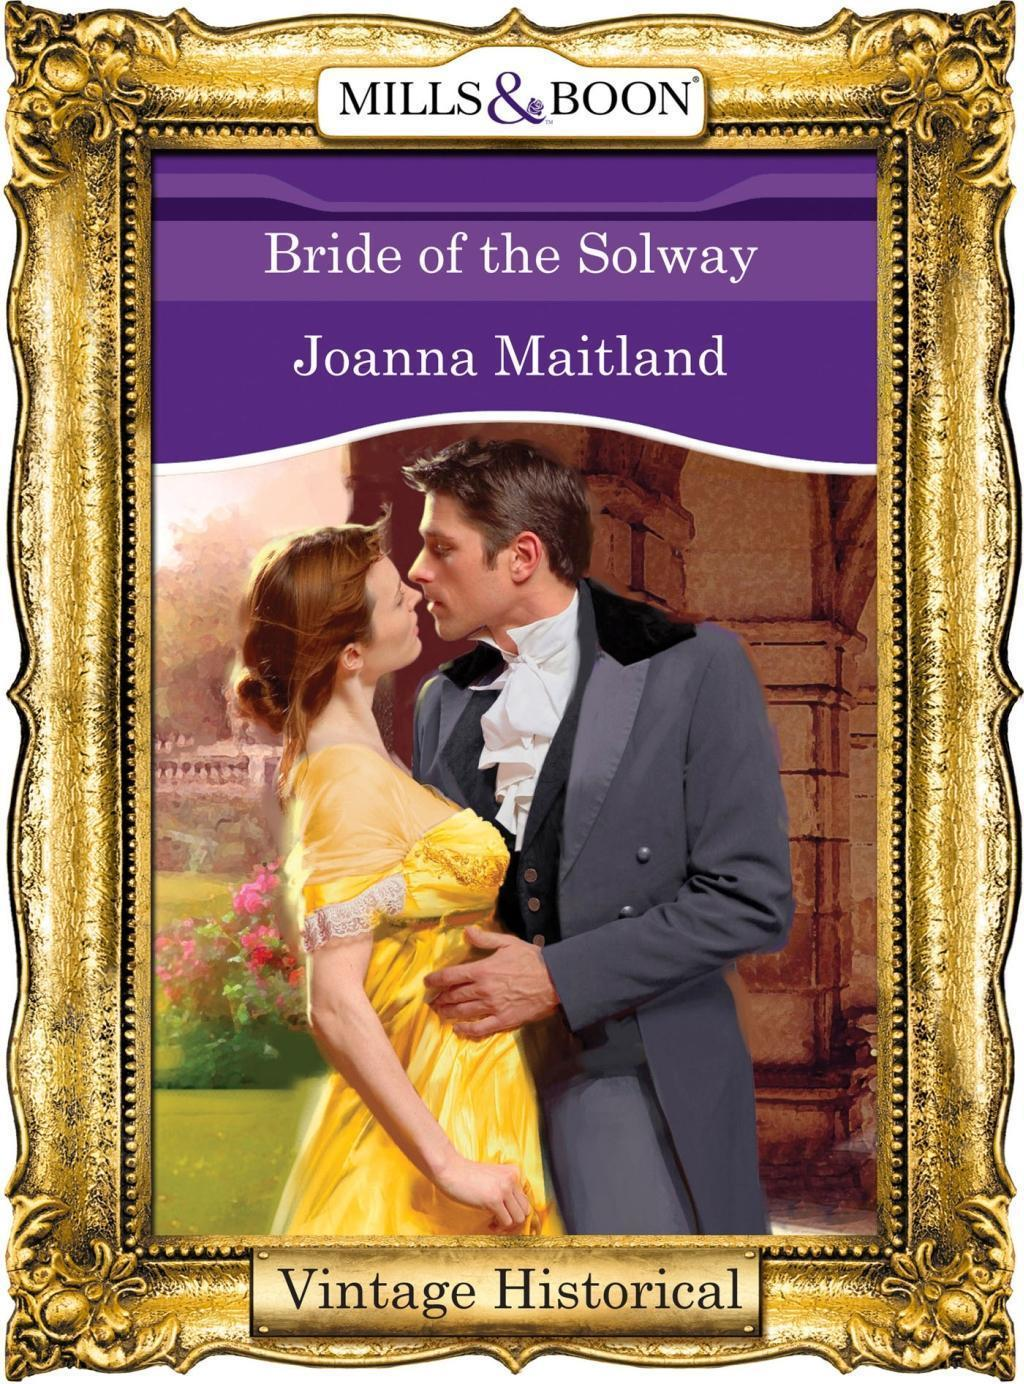 Bride of the Solway (Mills & Boon Historical)